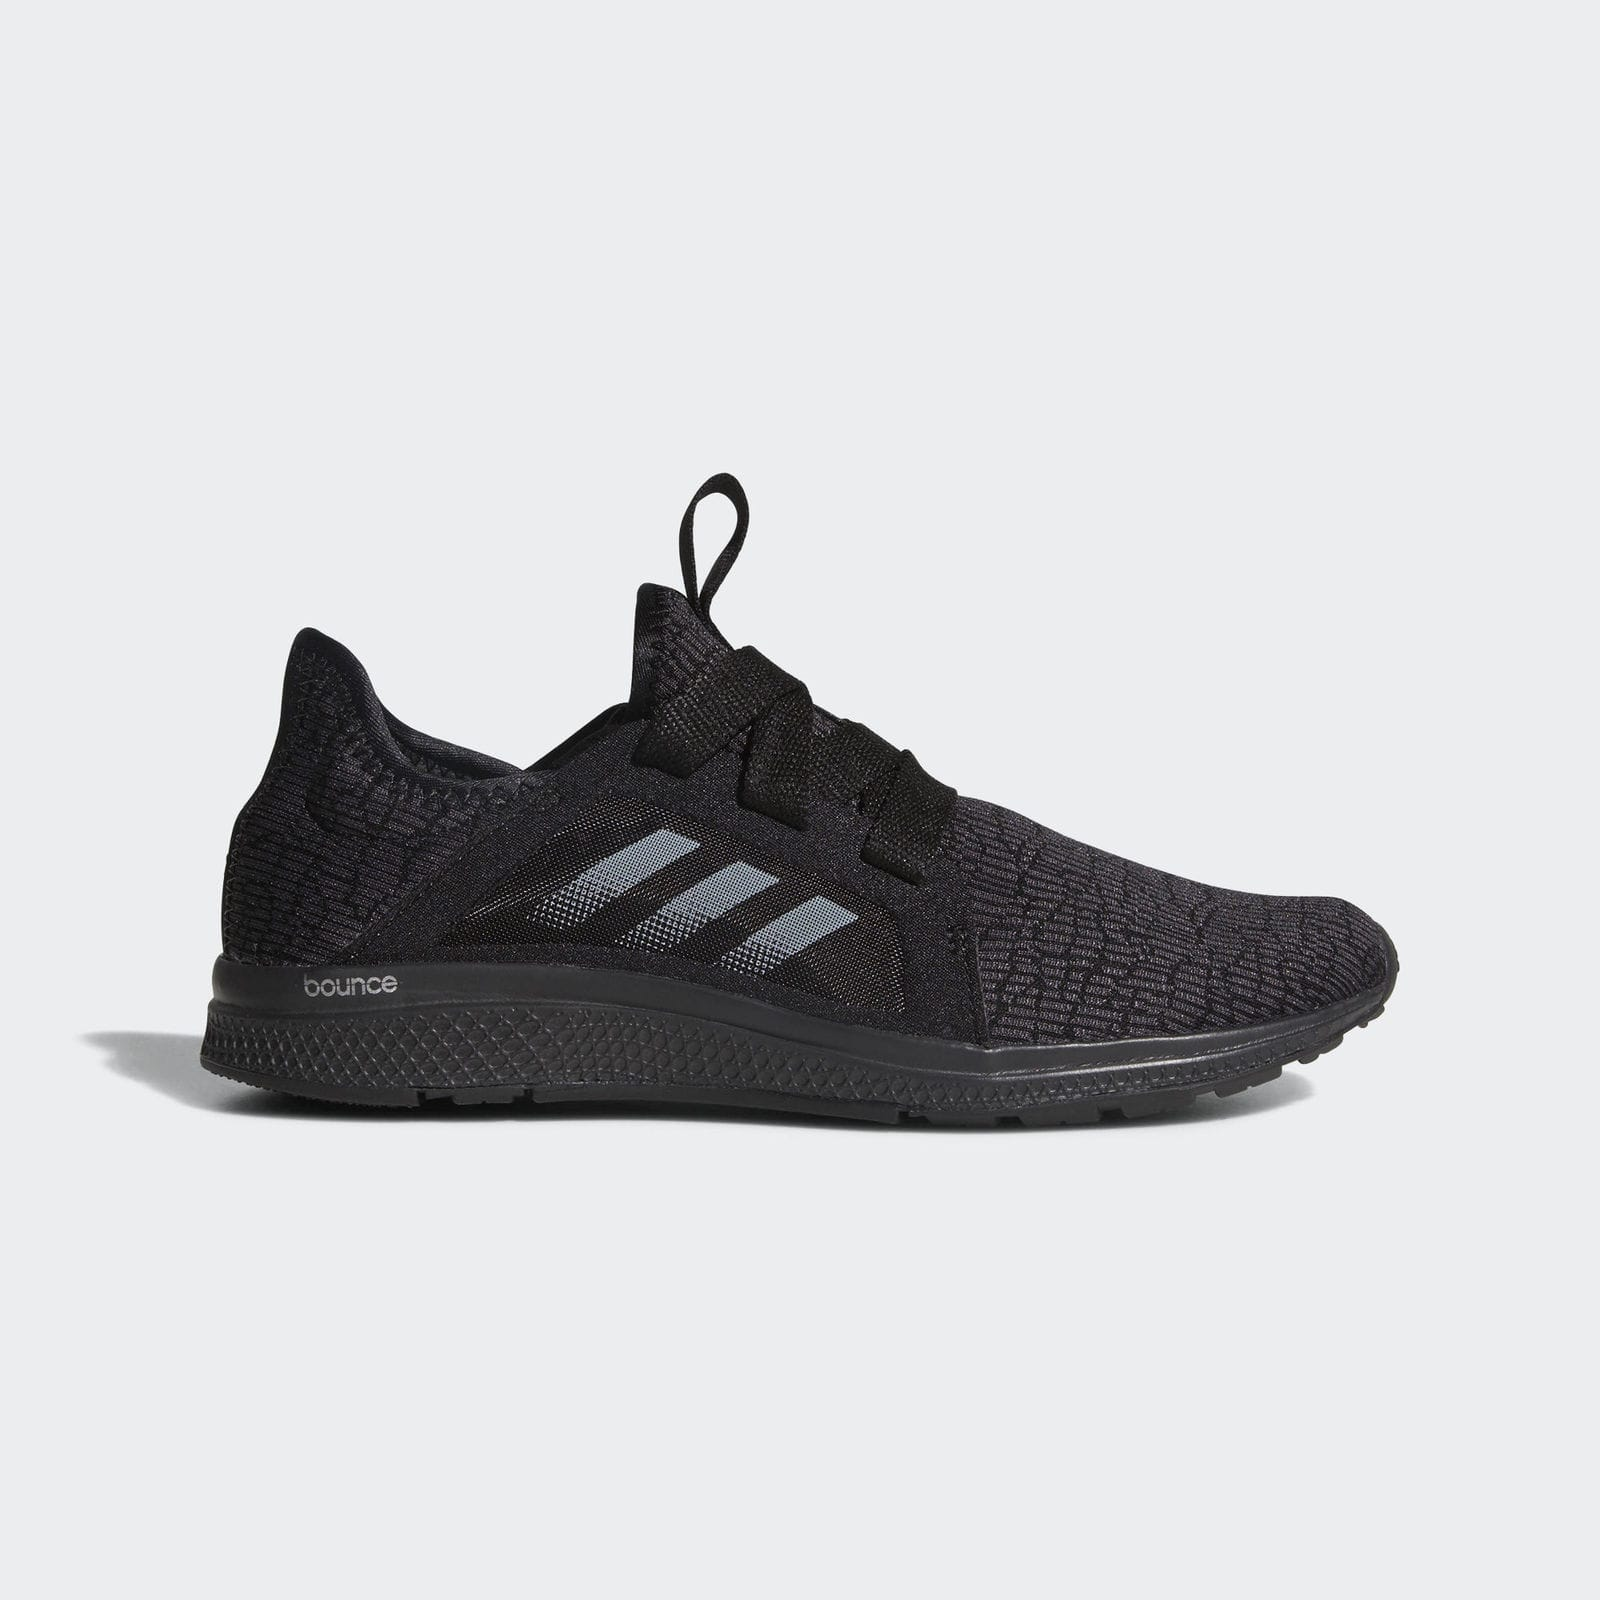 Adidas Edge Lux Women's Shoes (Ships Free) $34